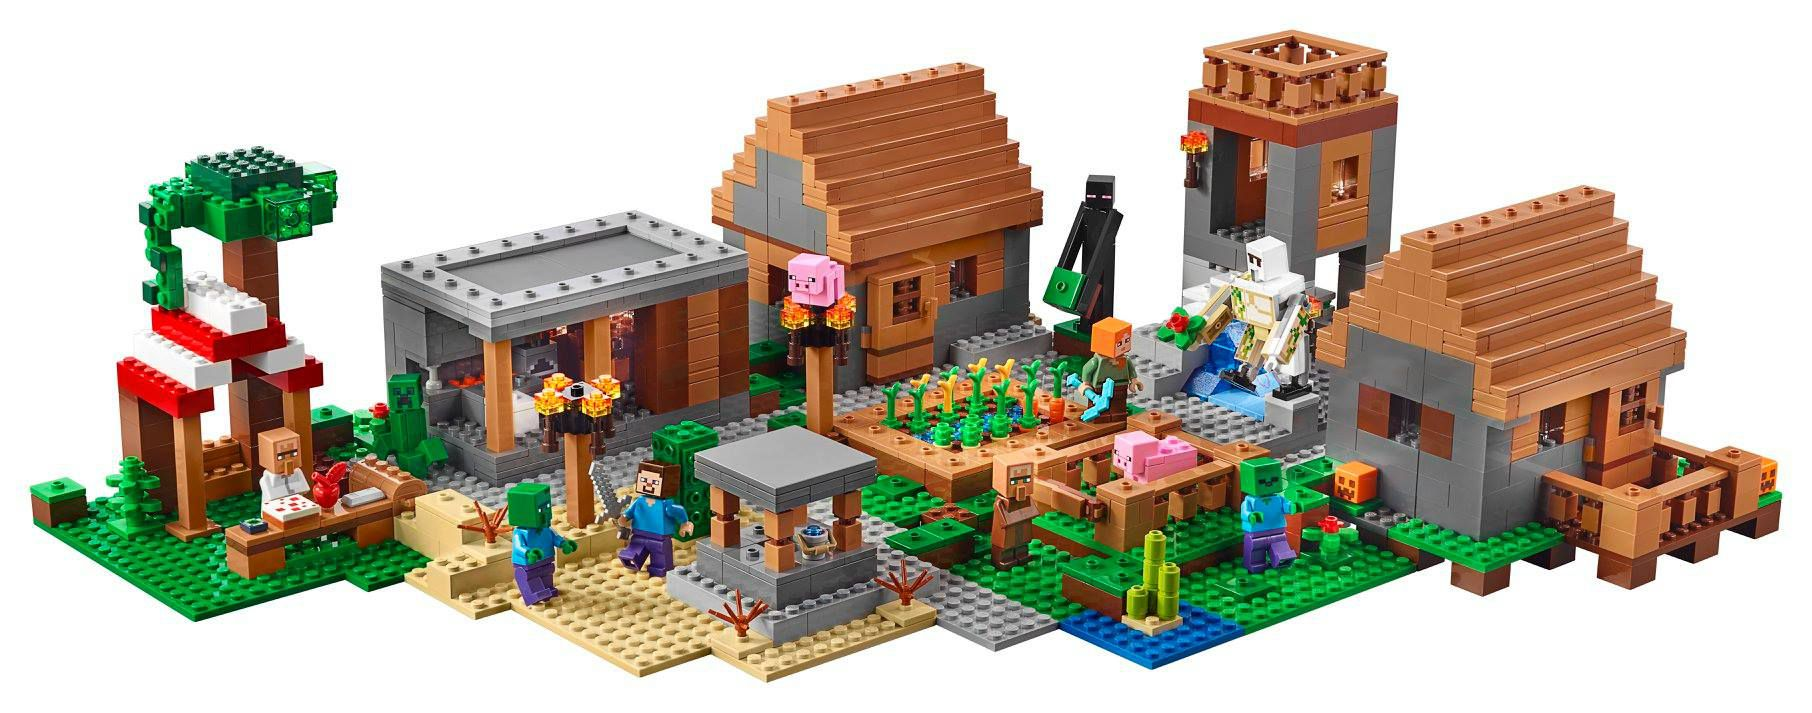 LEGO Minecraft 21128 Das Dorf LEGO-Minecraft-21128-The-Village_img11.jpg